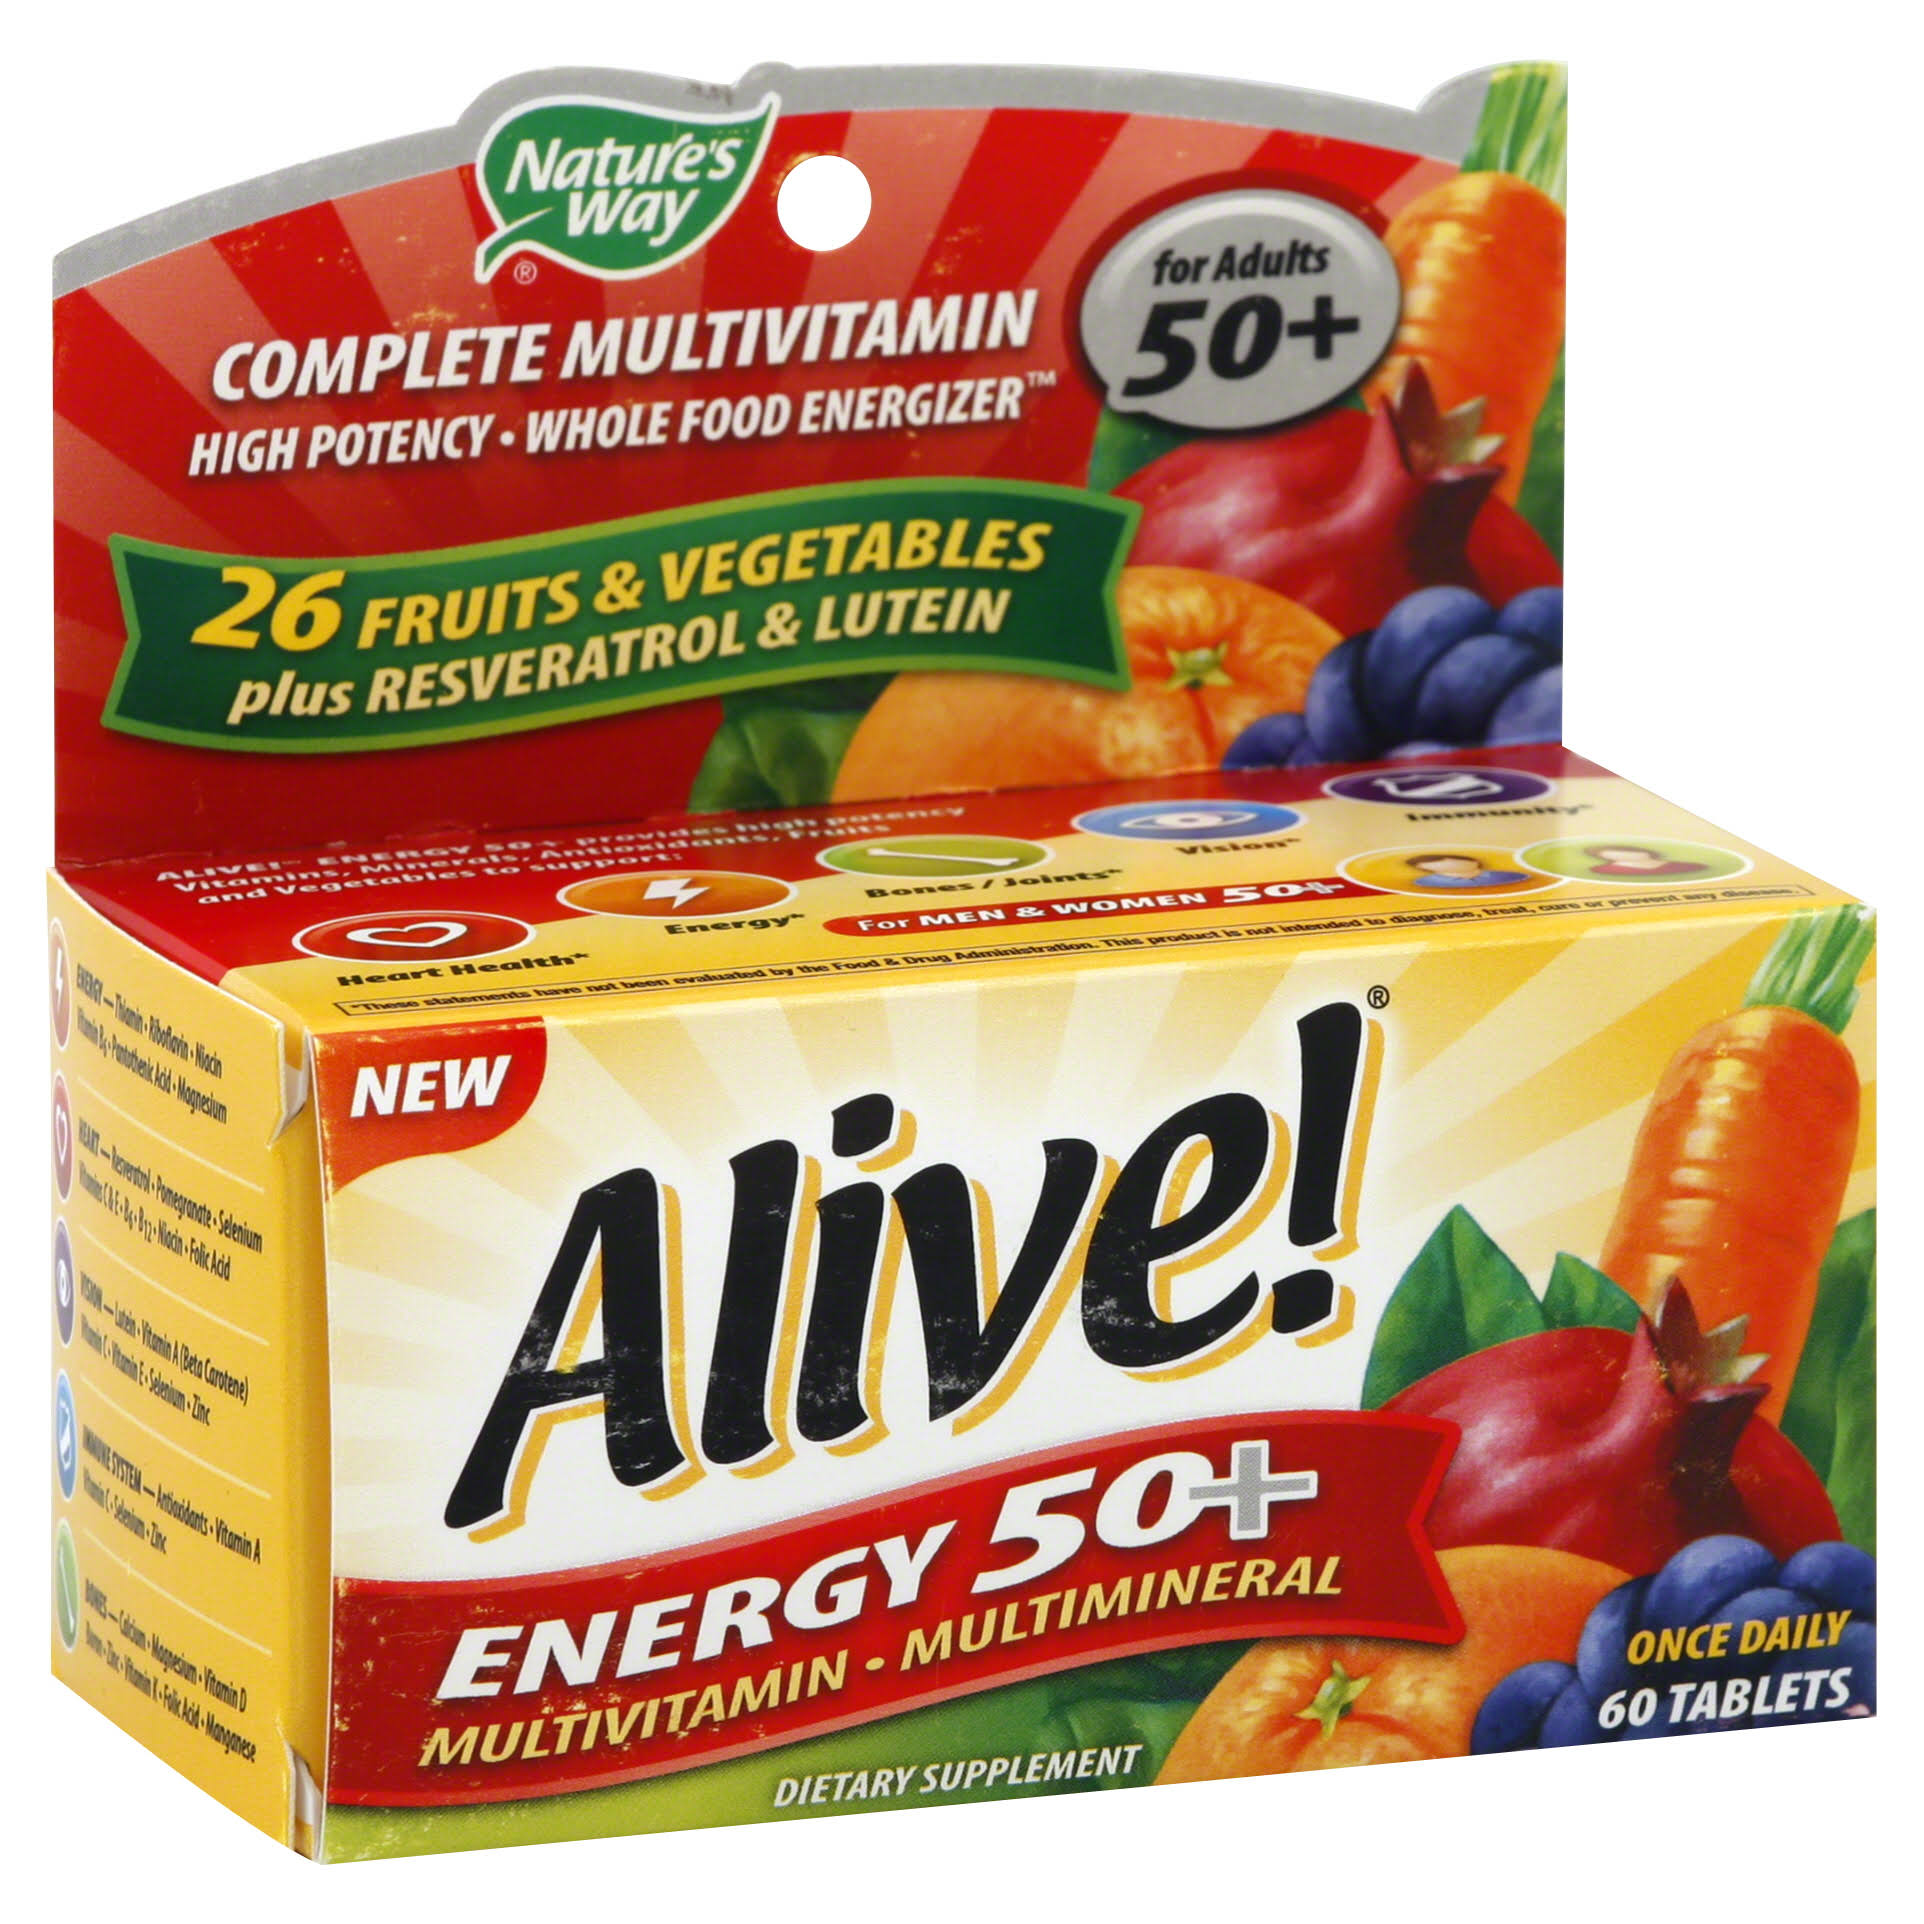 Nature's Way Alive Energy 50 Multivitamin - 60 Tablets